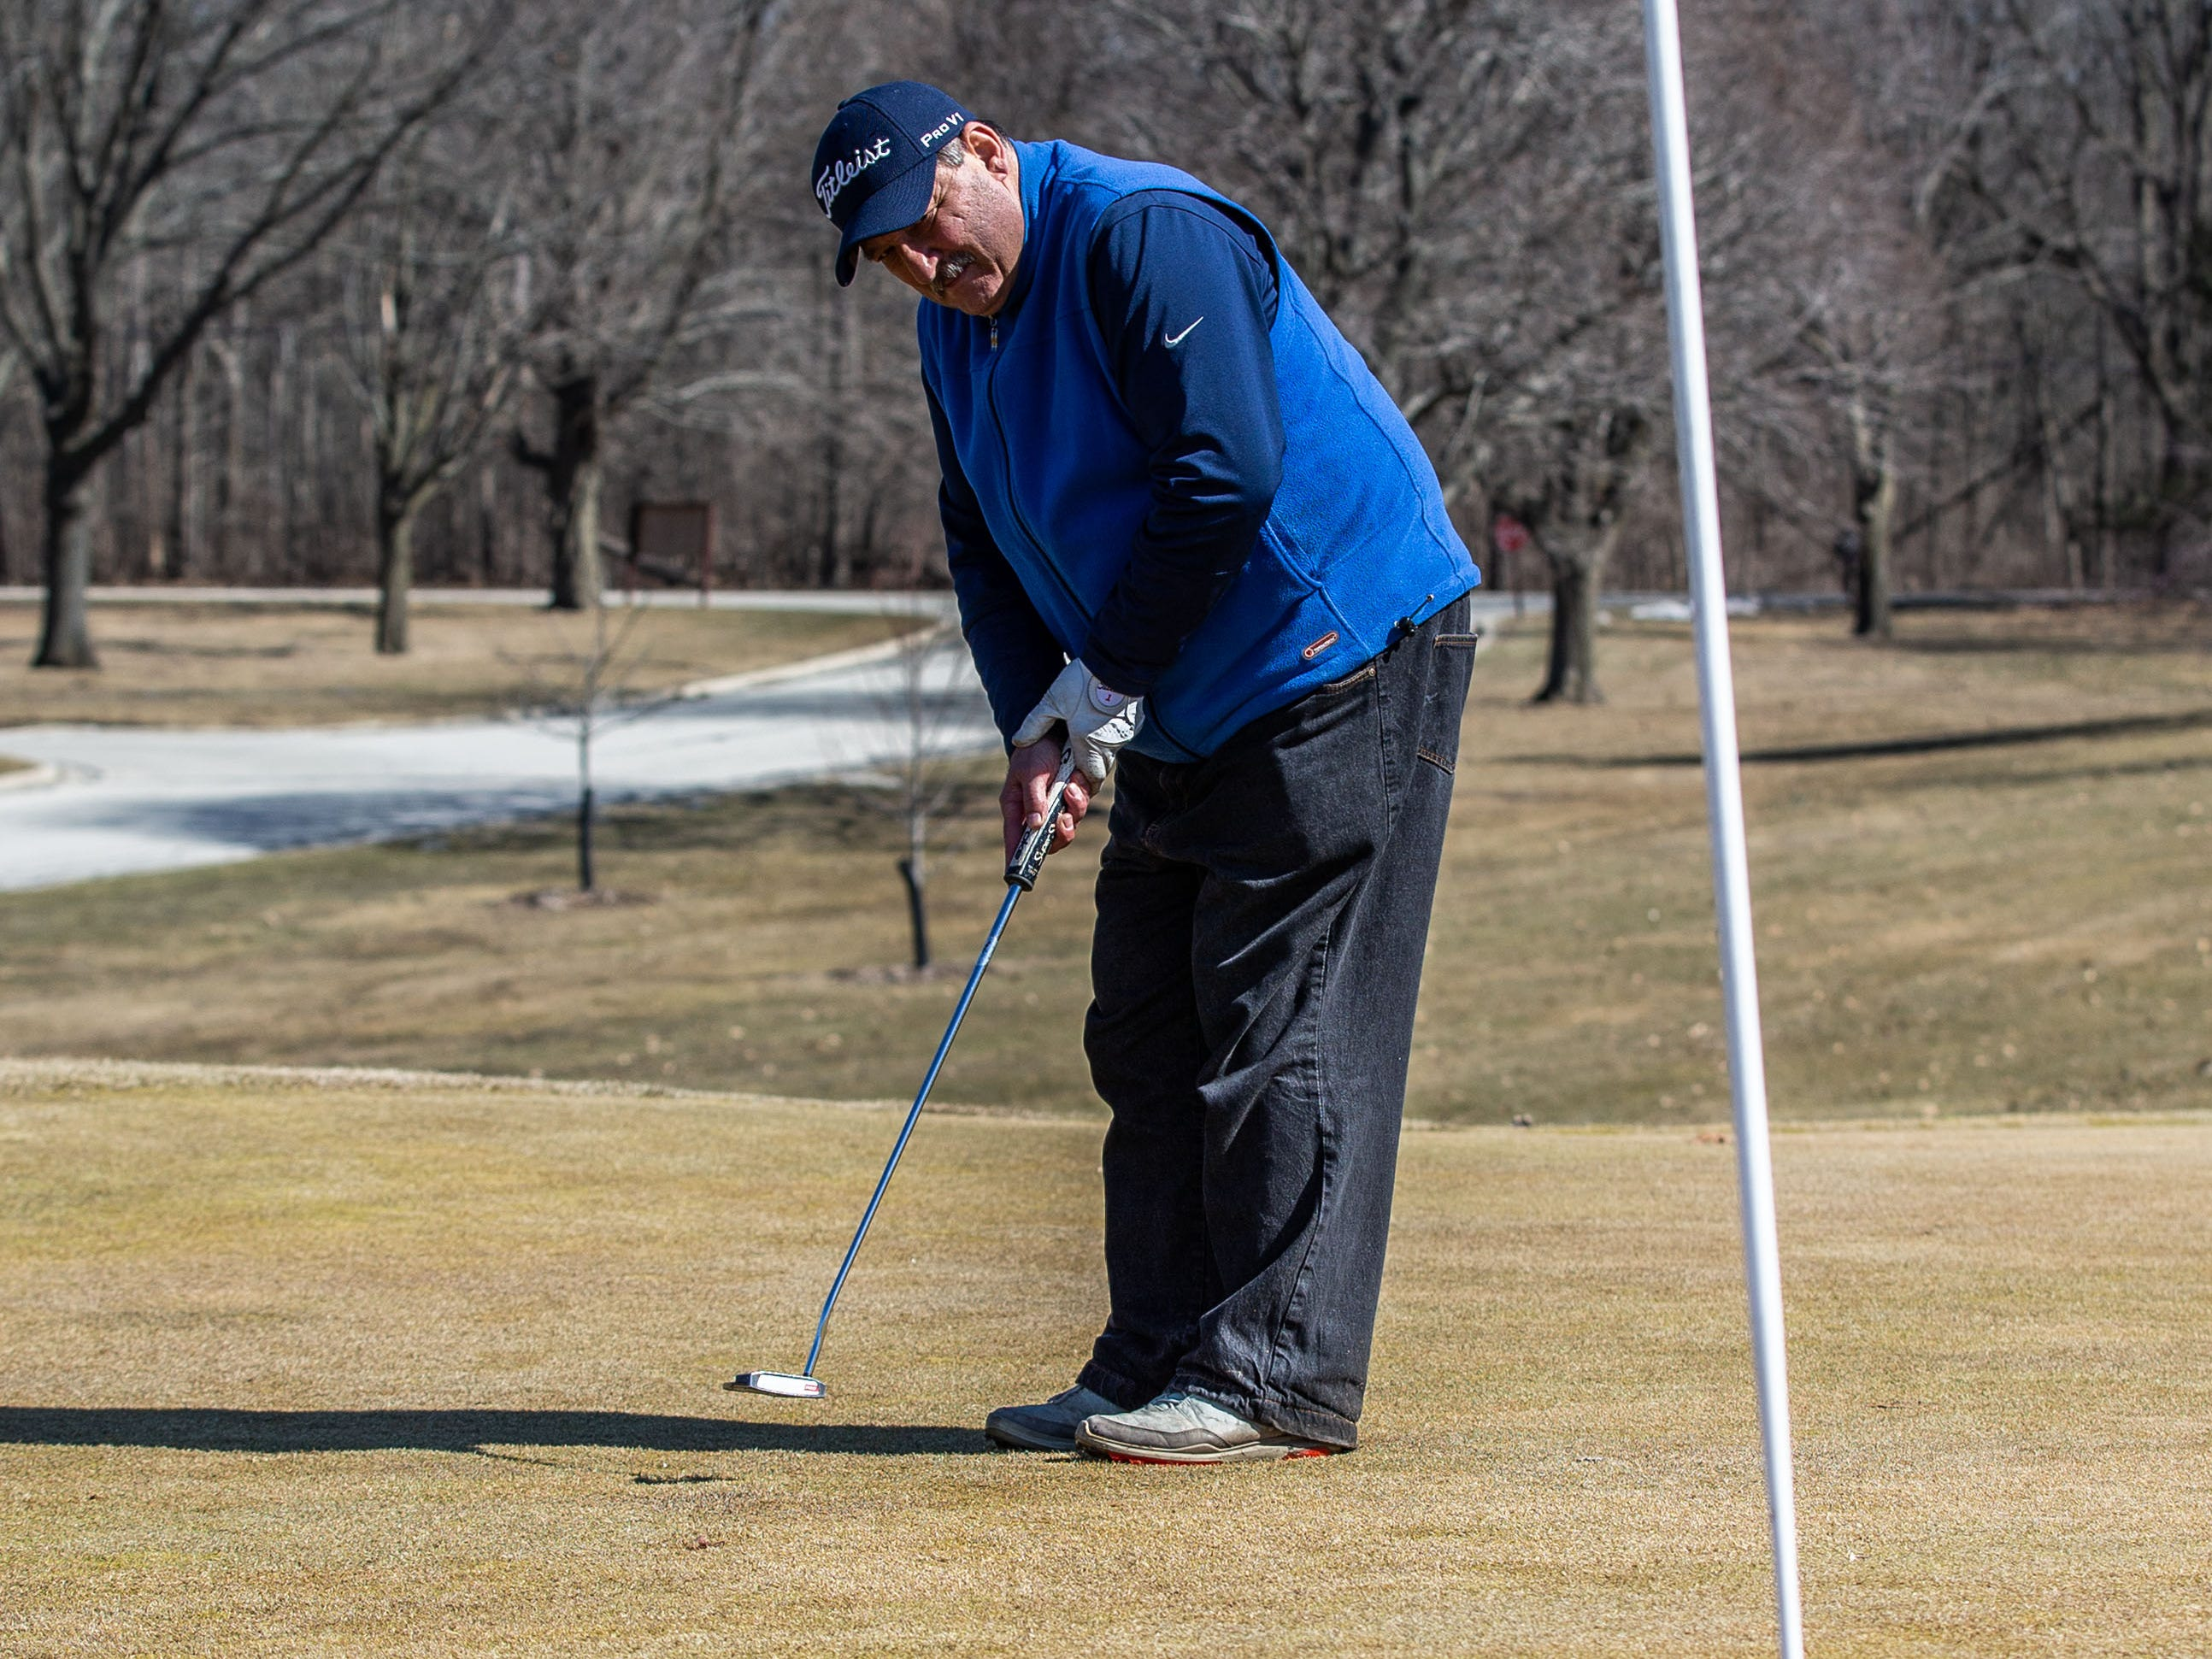 Jack Gabor of Greenfield sinks a putt at Whitnall Park Golf Course in Franklin on Saturday, March 23, 2019. Warm sunny weather lured many enthusiasts outside to enjoy the game.